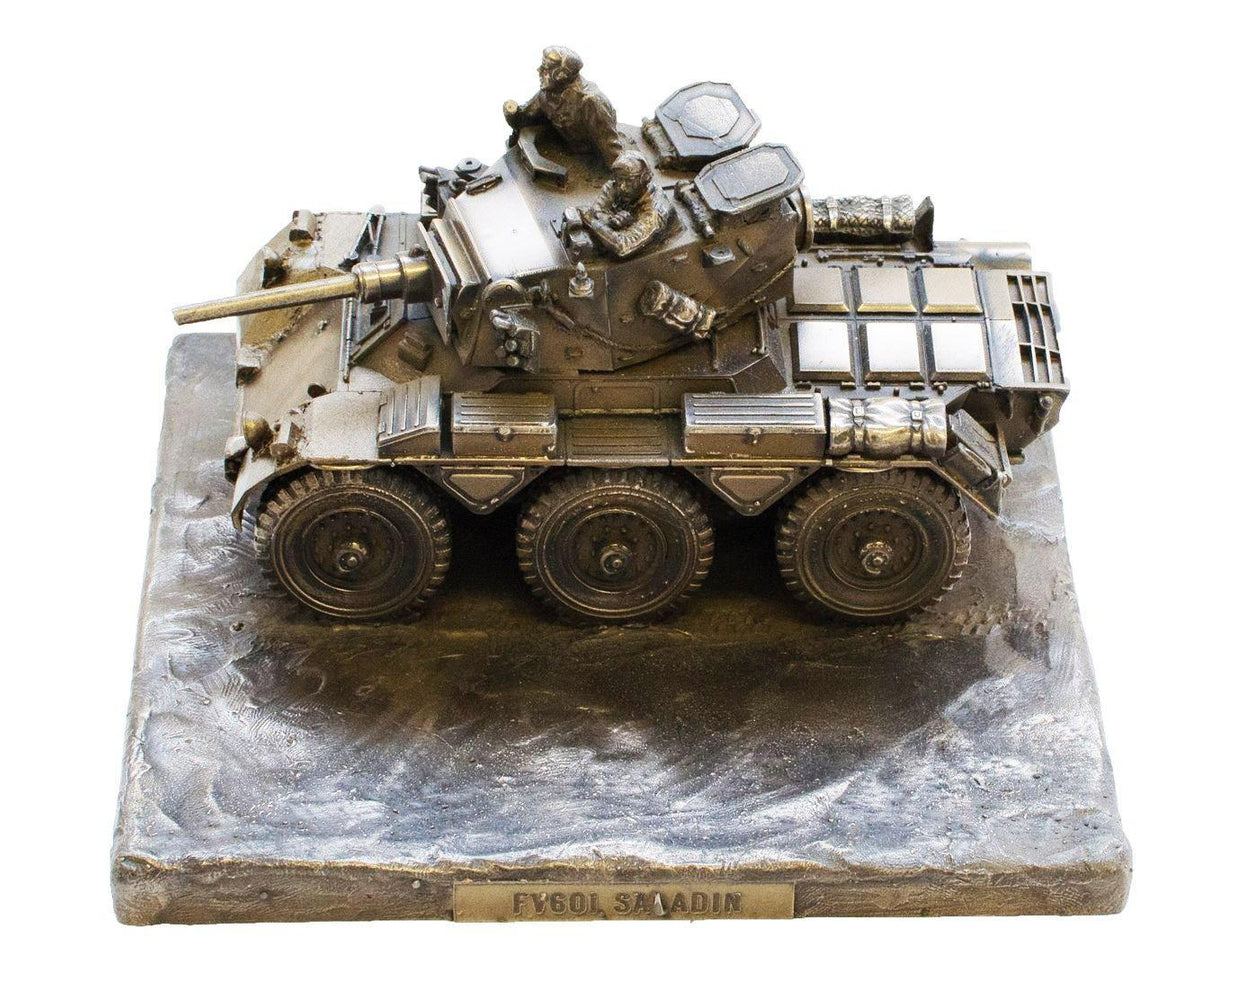 Military Statue - Saladin FV601 Armoured Car Cold Cast Bronze Military Statue